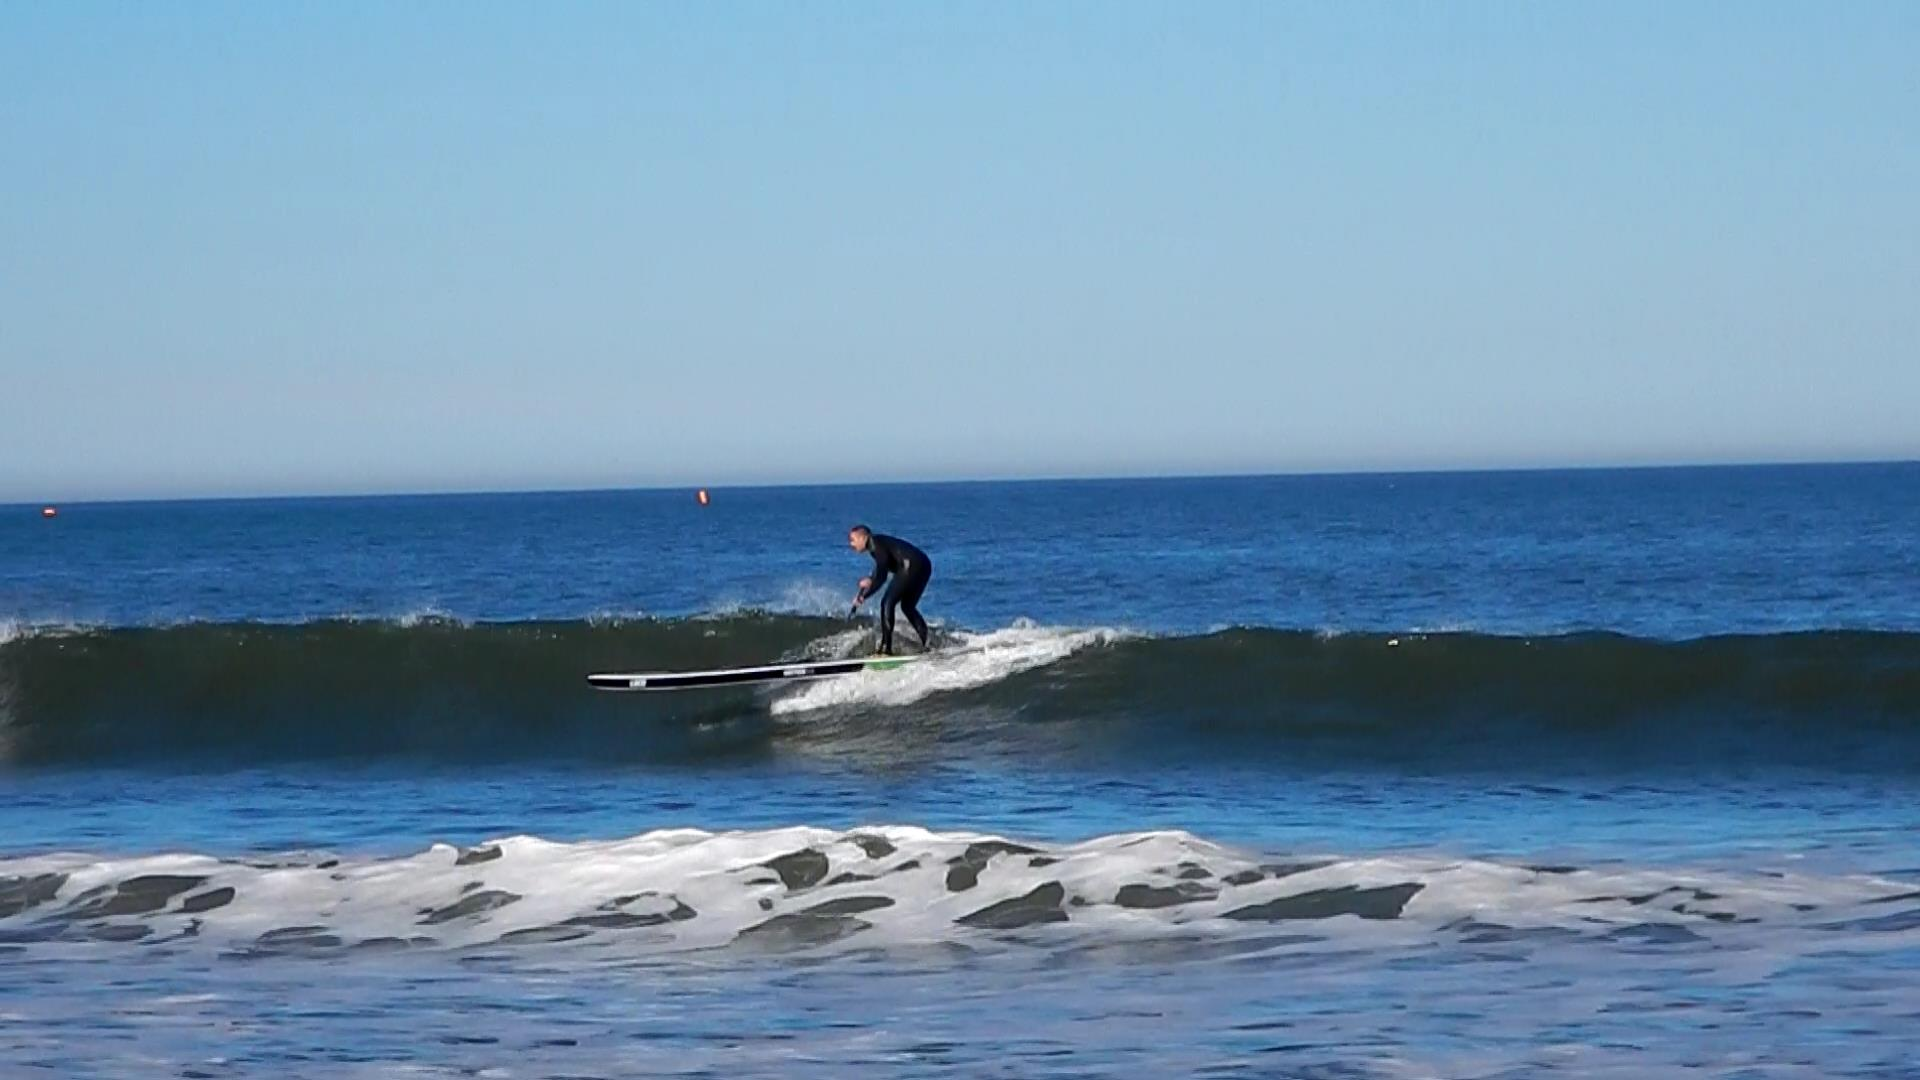 14′ Loco Motion Air iSUP Surfing Waves in North East